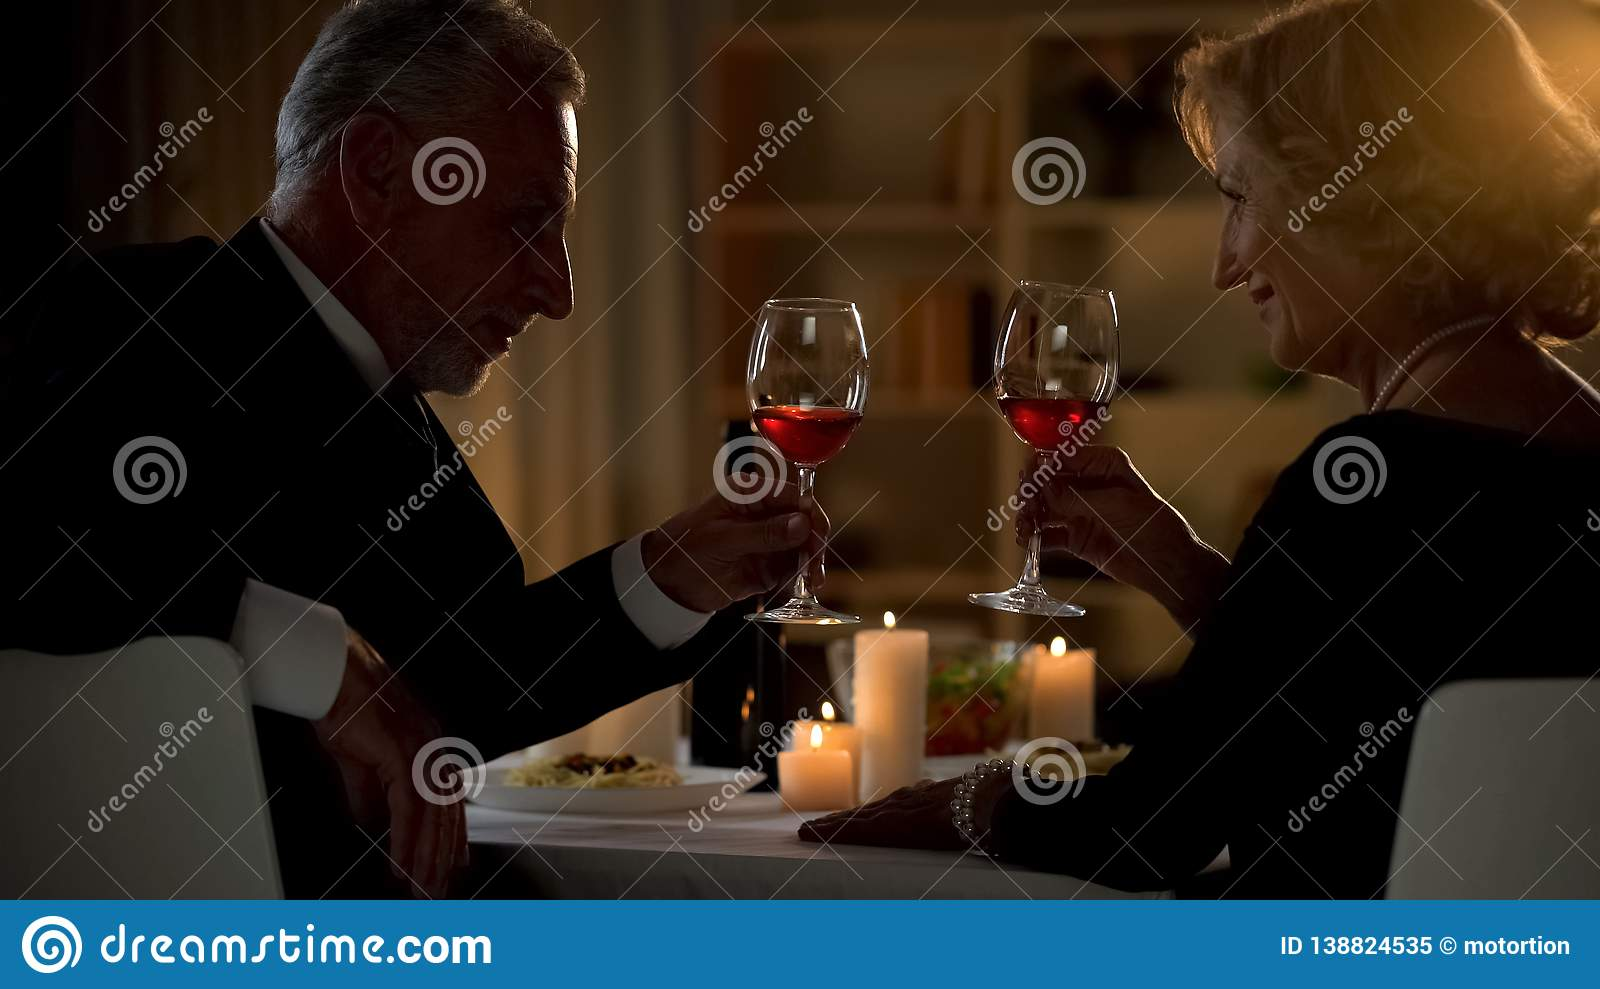 Senior male and female toasting with wine glasses, aged couple flirting on date